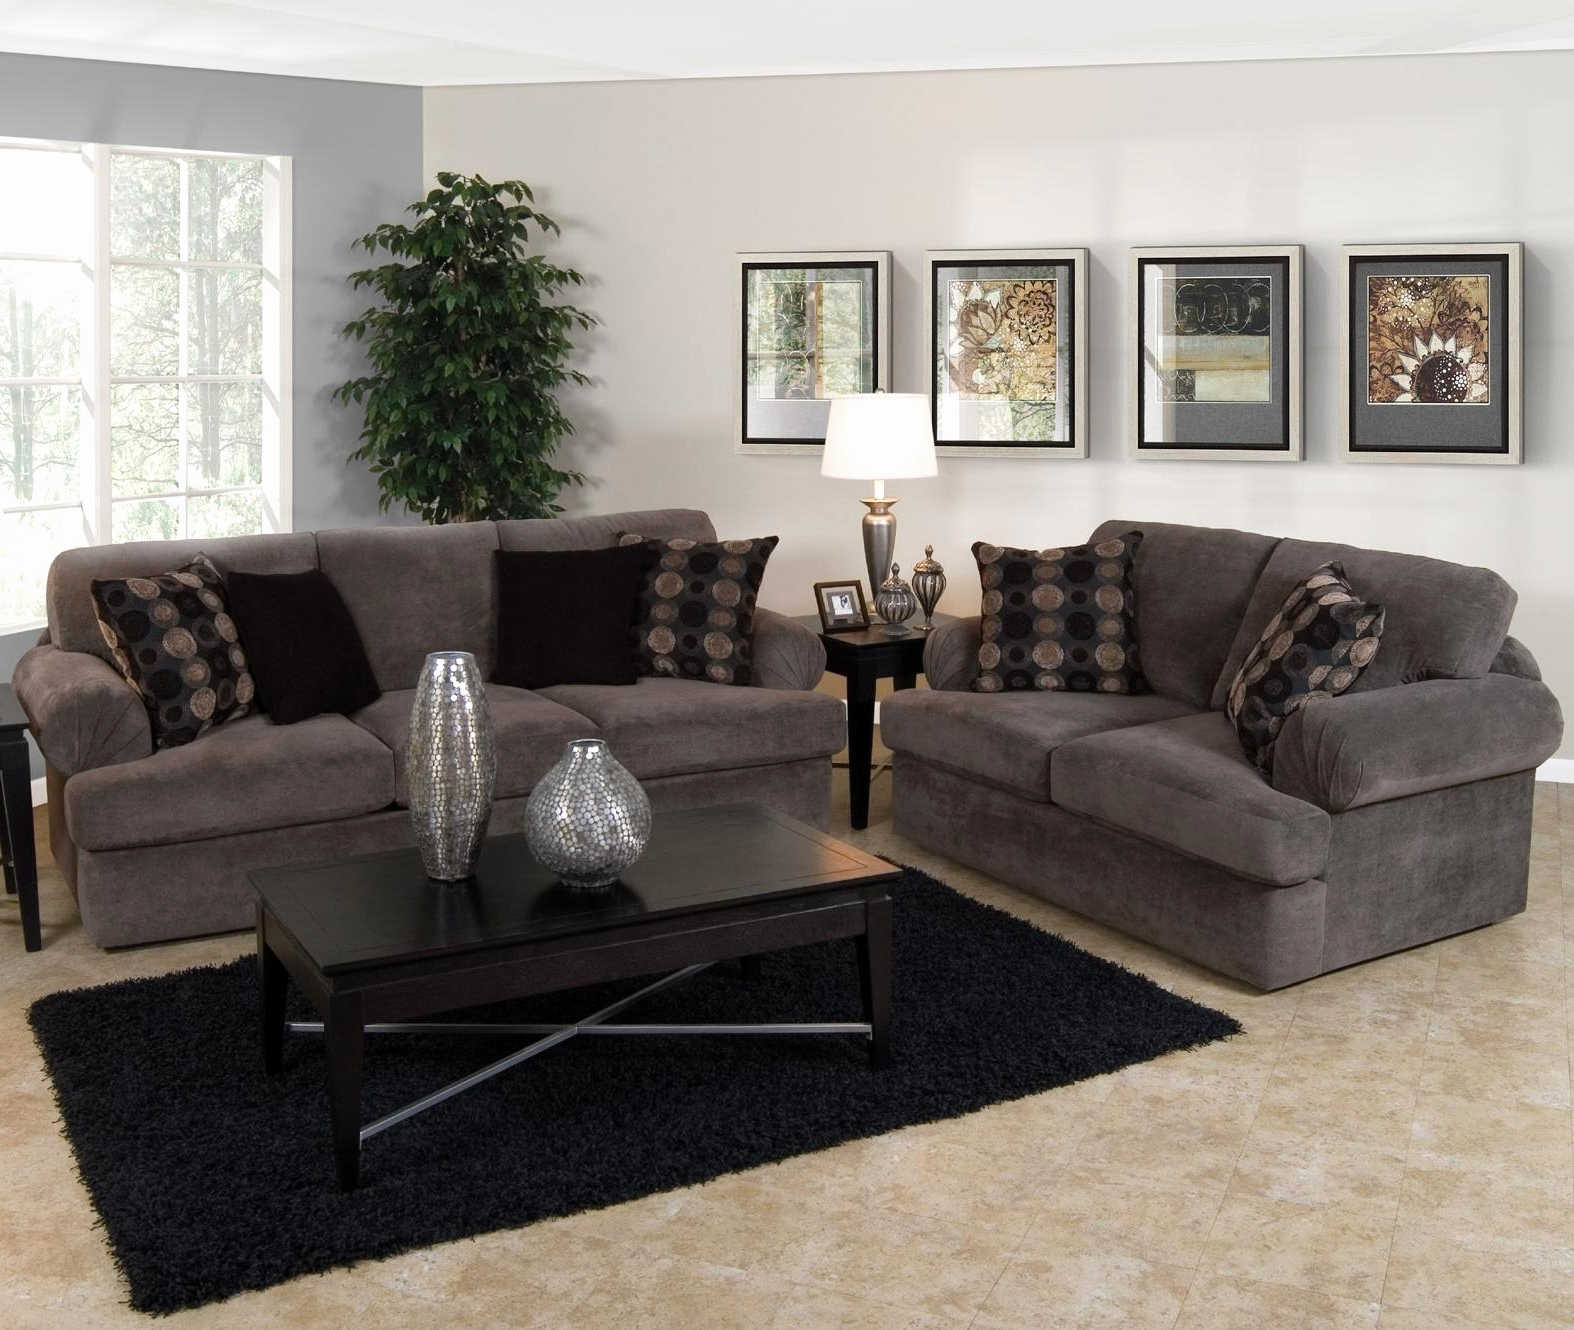 Elegant England Sectional Sofa 2018 – Couches Ideas Inside Popular Nova Scotia Sectional Sofas (View 9 of 20)